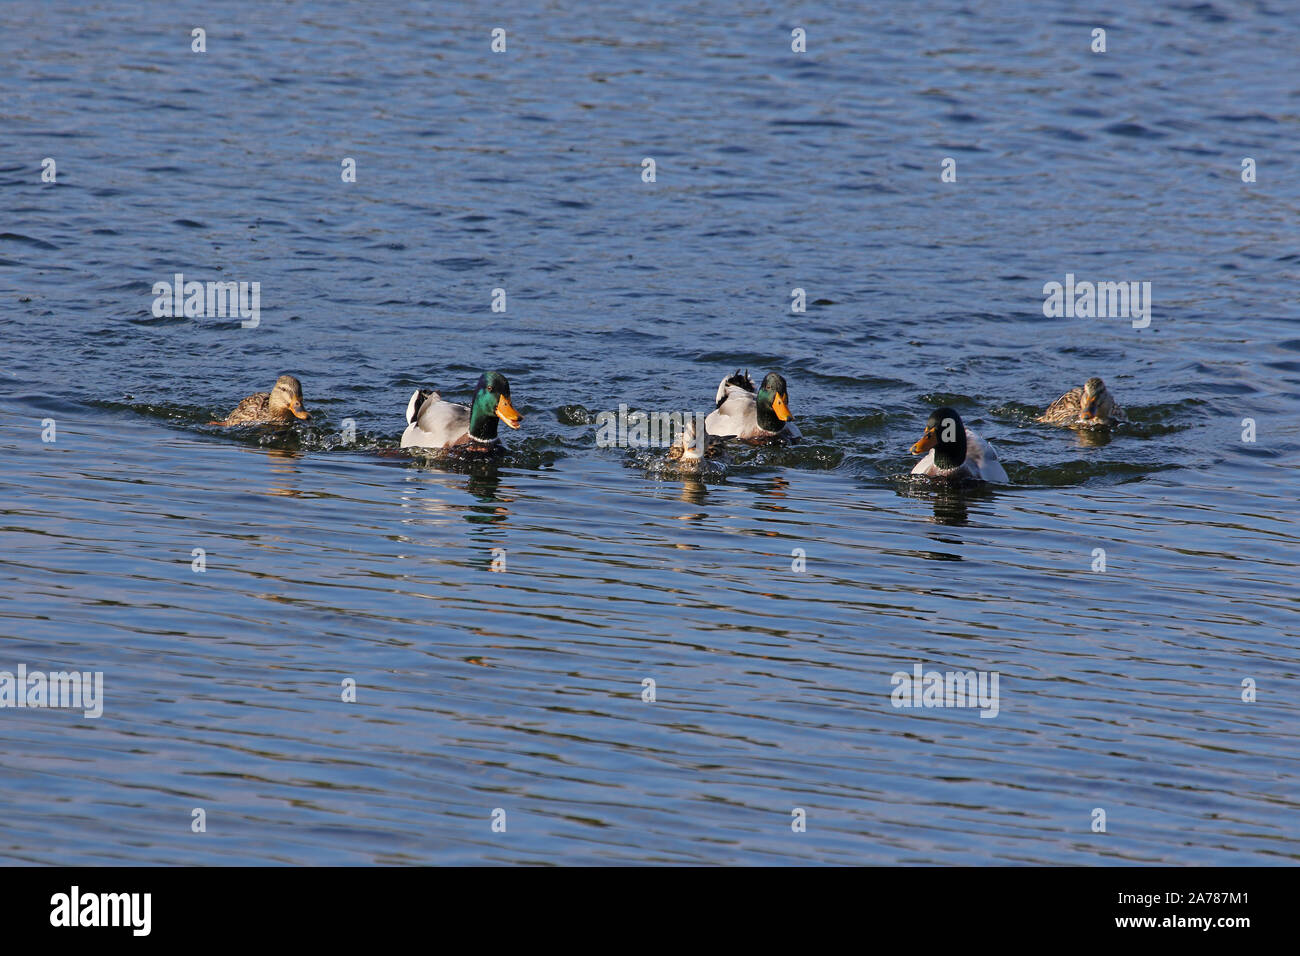 three pairs of mallards male and female ducks Latin name Anas platyrhynchos family anatidae swimming in a lake in Porto Potenza Picena in Italy Stock Photo